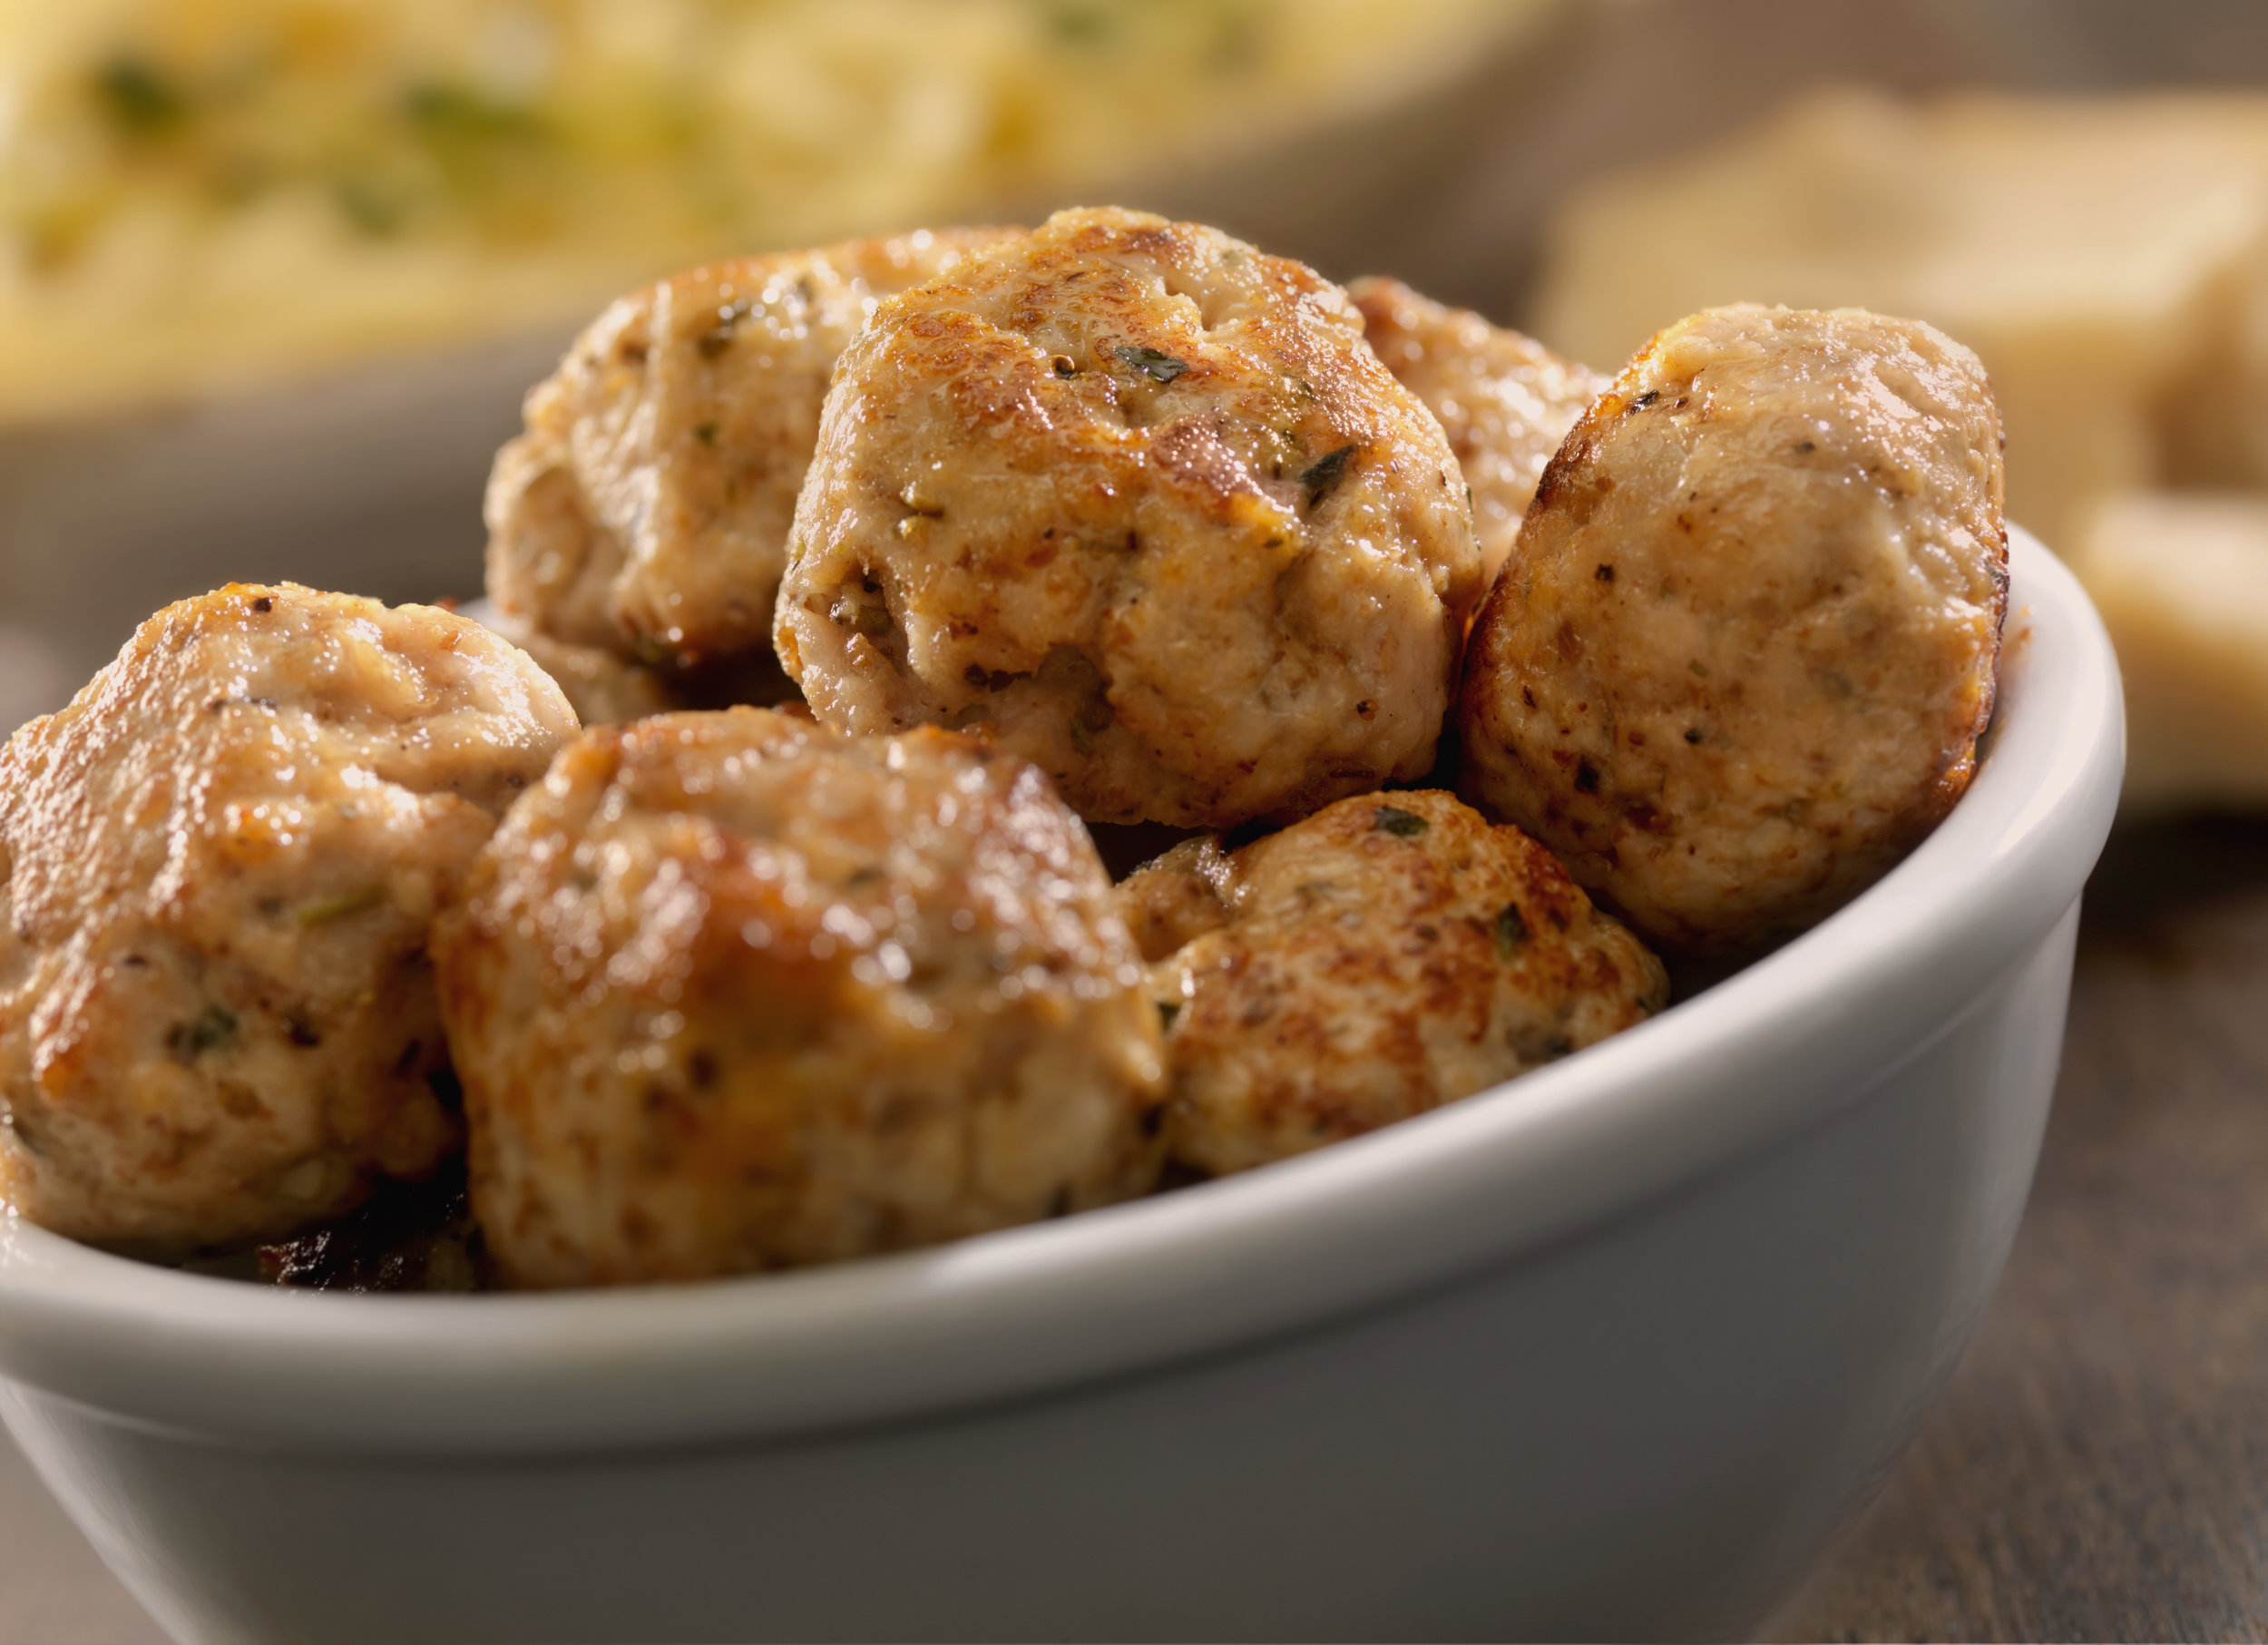 Why We ❤ Chicken Meatballs